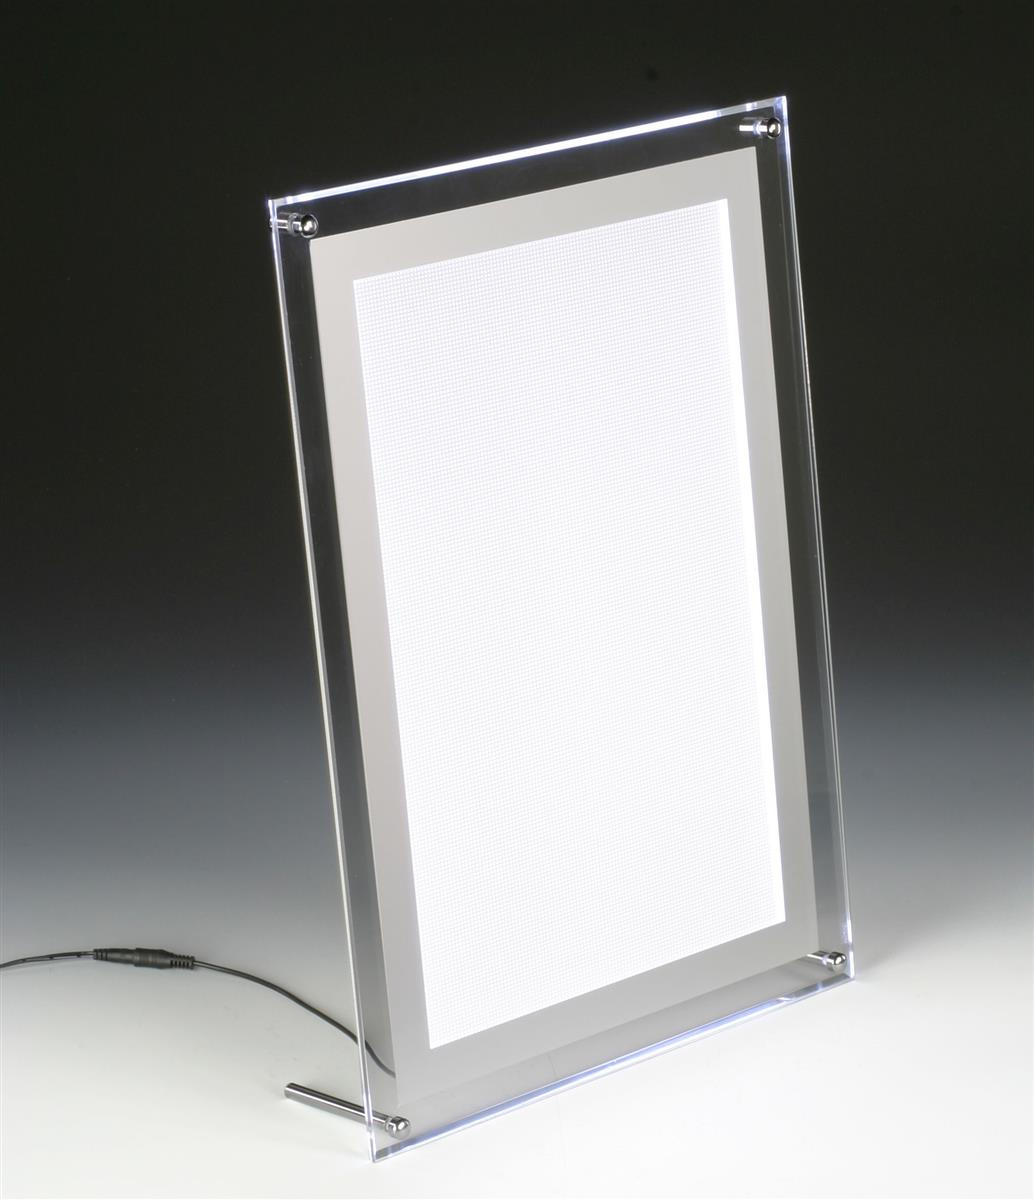 Slim Light Box | Countertop or Wall Mount Frame